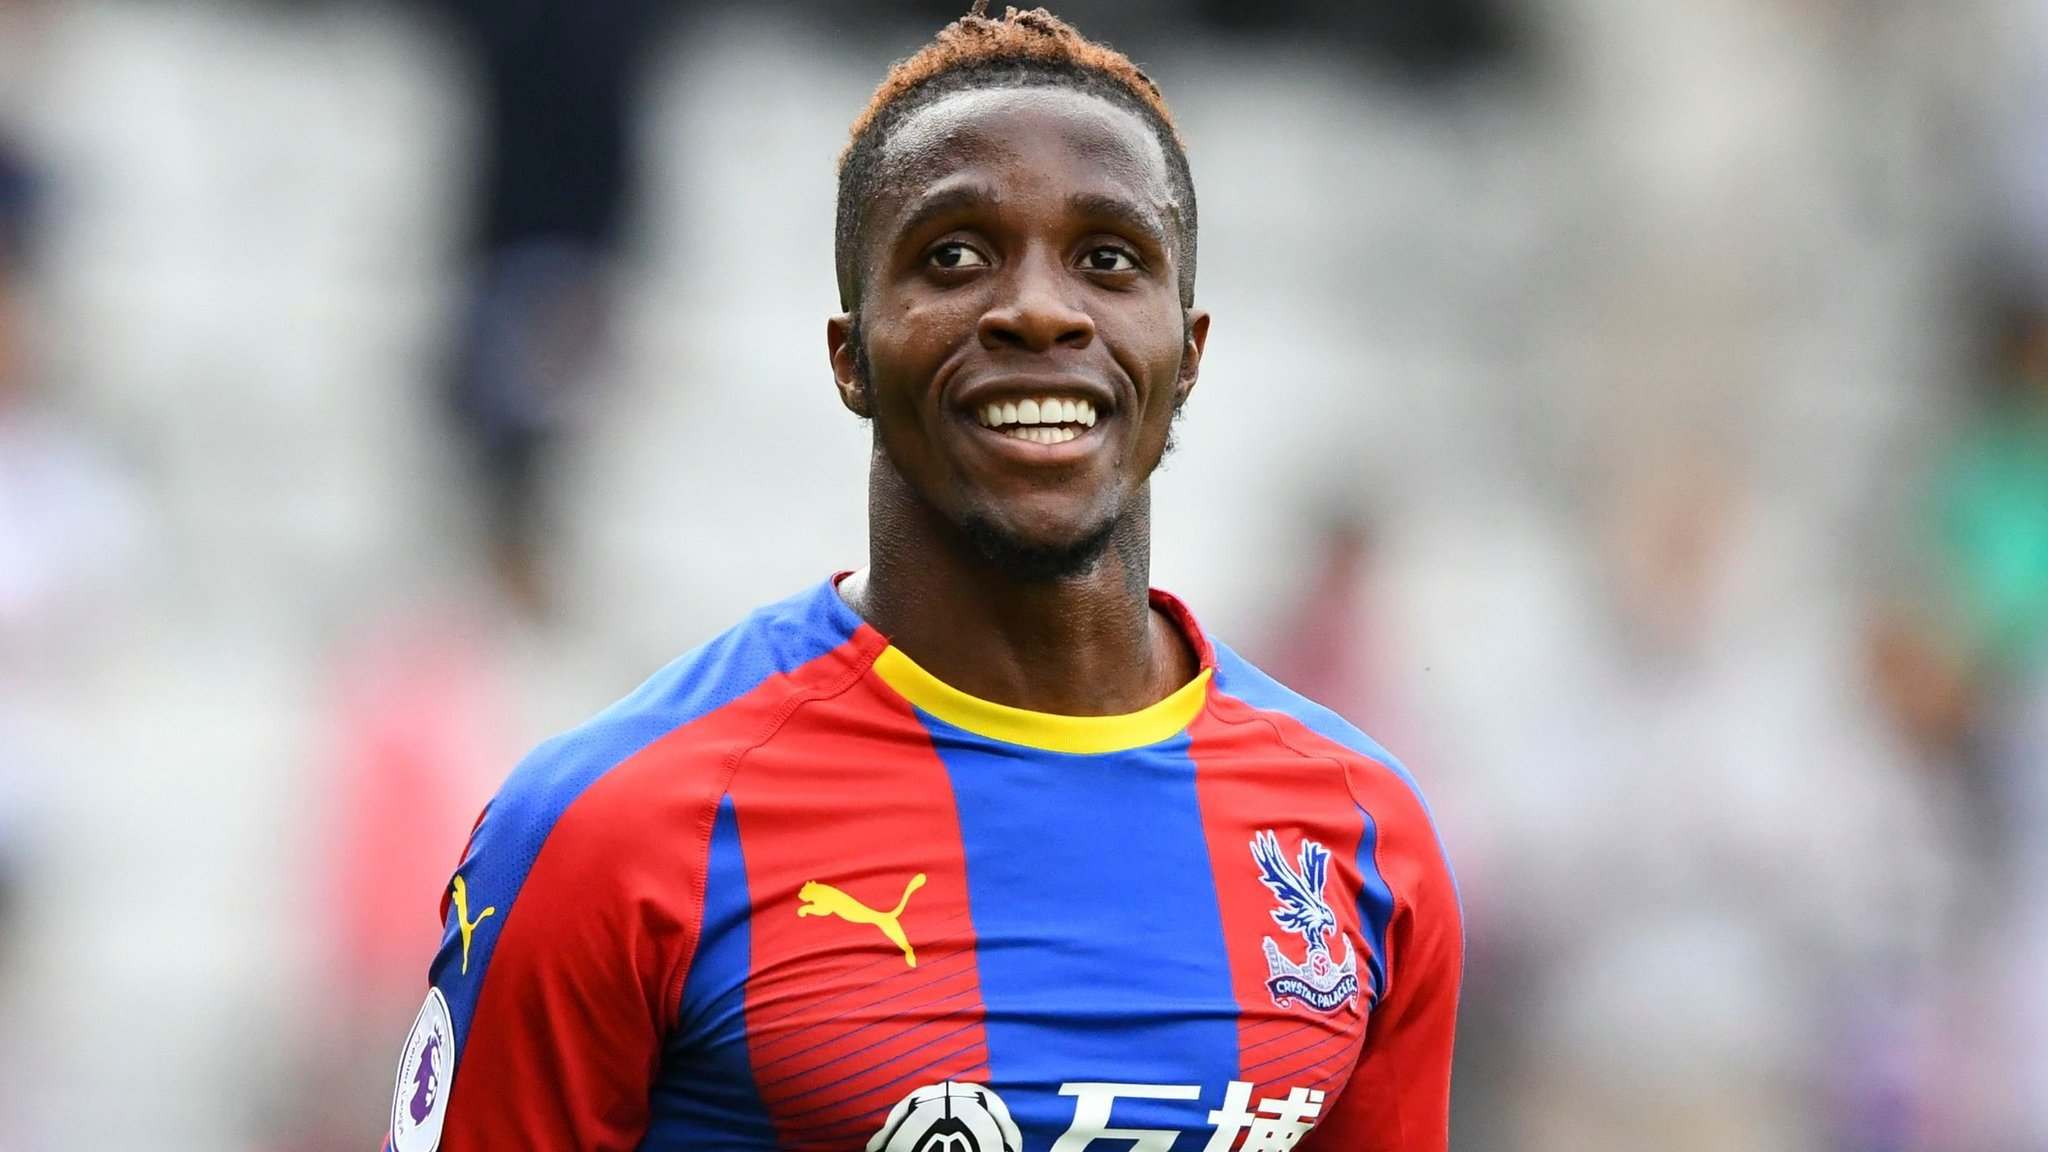 Ivory Coast's Zaha signs new five-year Palace deal